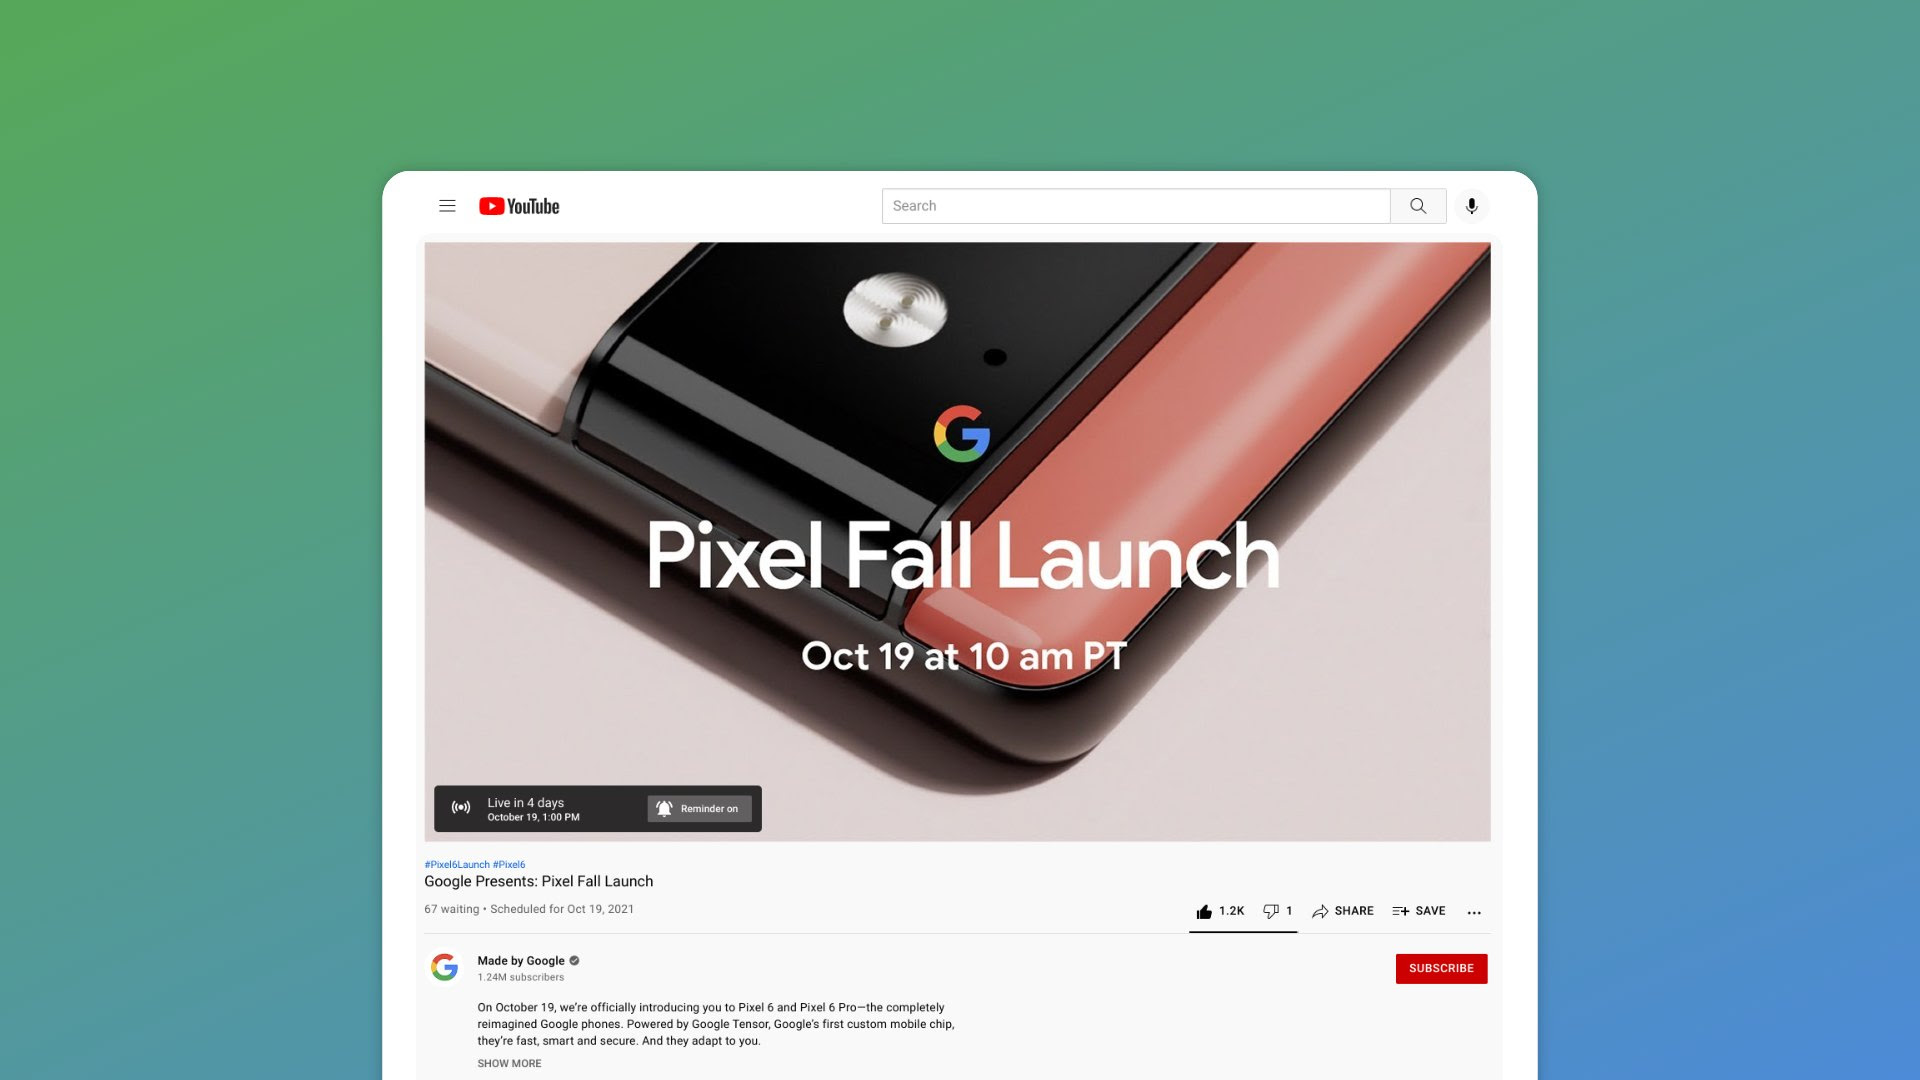 Google's Pixel Fall Launch live stream is already up on YouTube if you know where to look